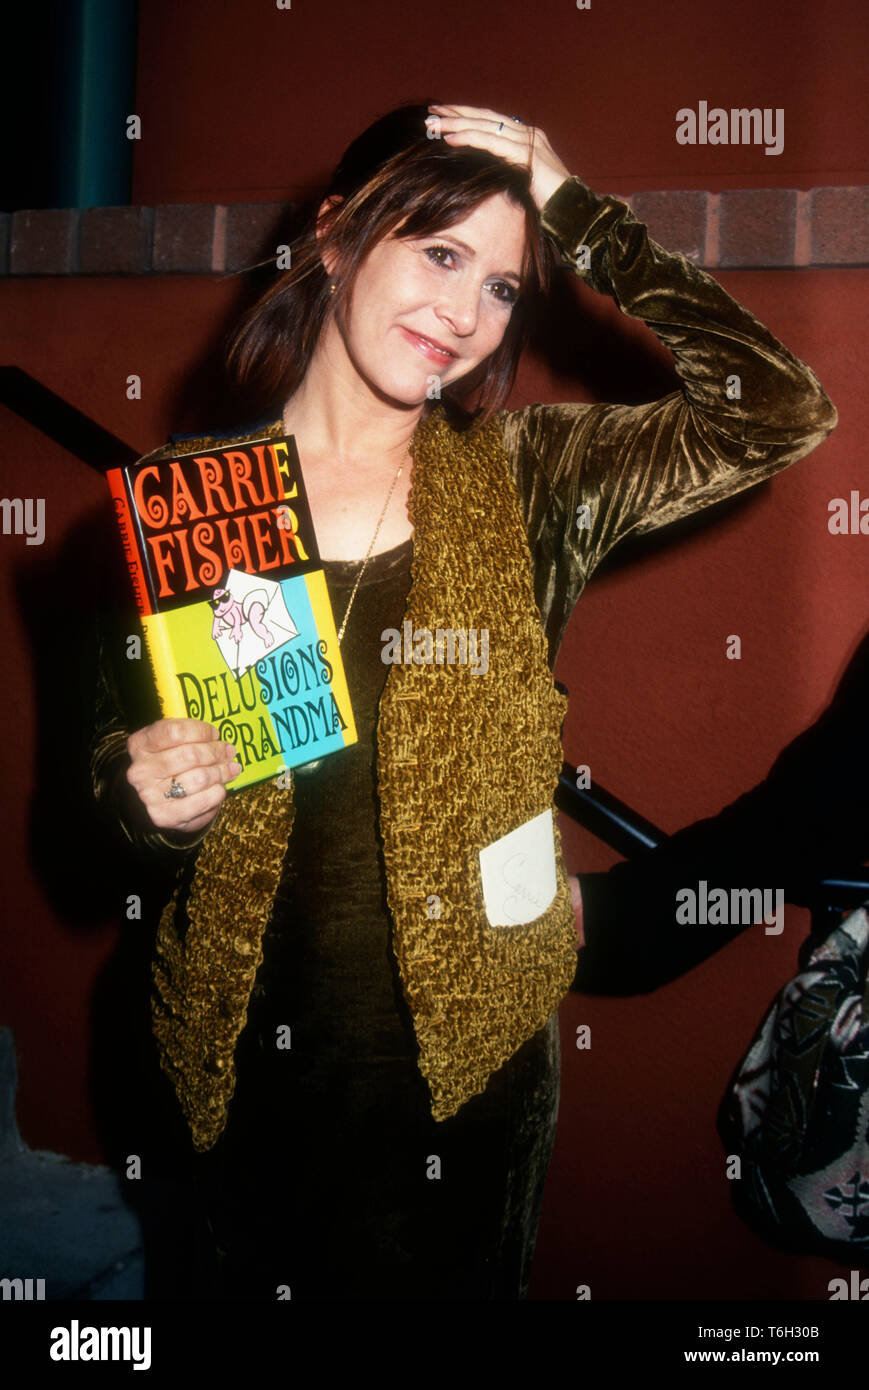 Los Angeles, California, USA 15th April 1994  Actress Carrie Fisher attends Book Signing for her book Delusions of Grandma on April 15, 1994 at Book Soup in Los Angeles, California, USA. Photo by Barry King/Alamy Stock Photo - Stock Image